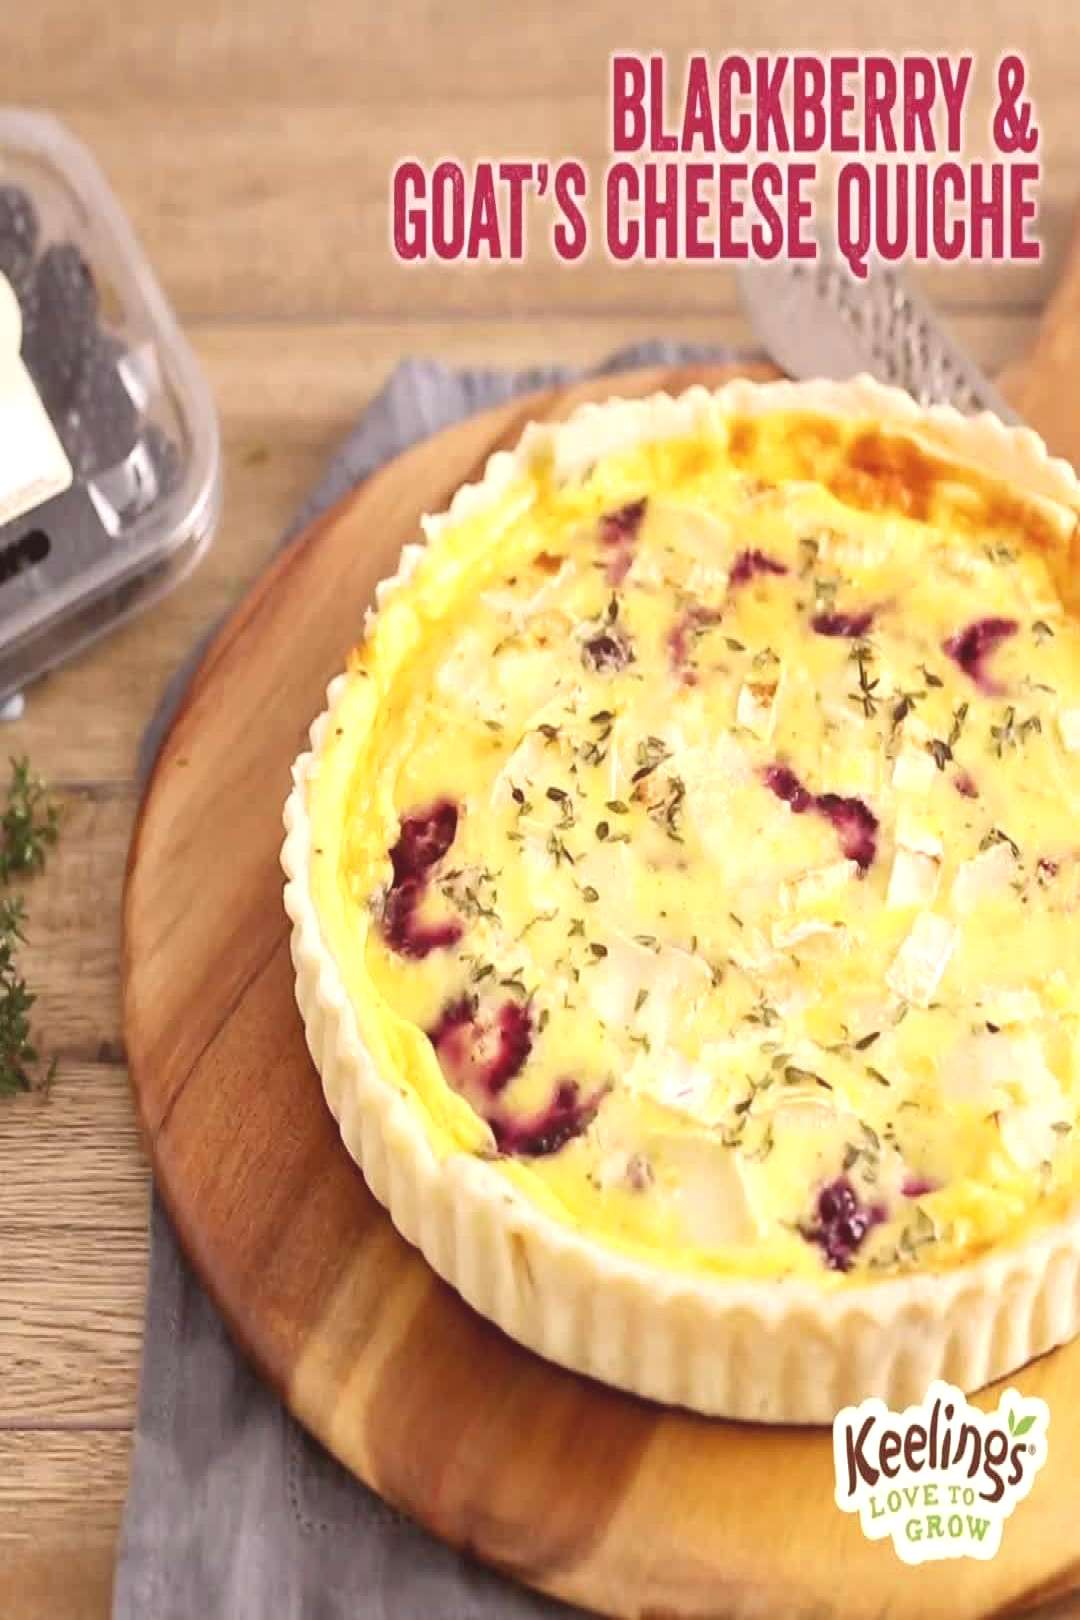 Our Blackberry and Goats Cheese Quiche is sweet, savoury, and eve